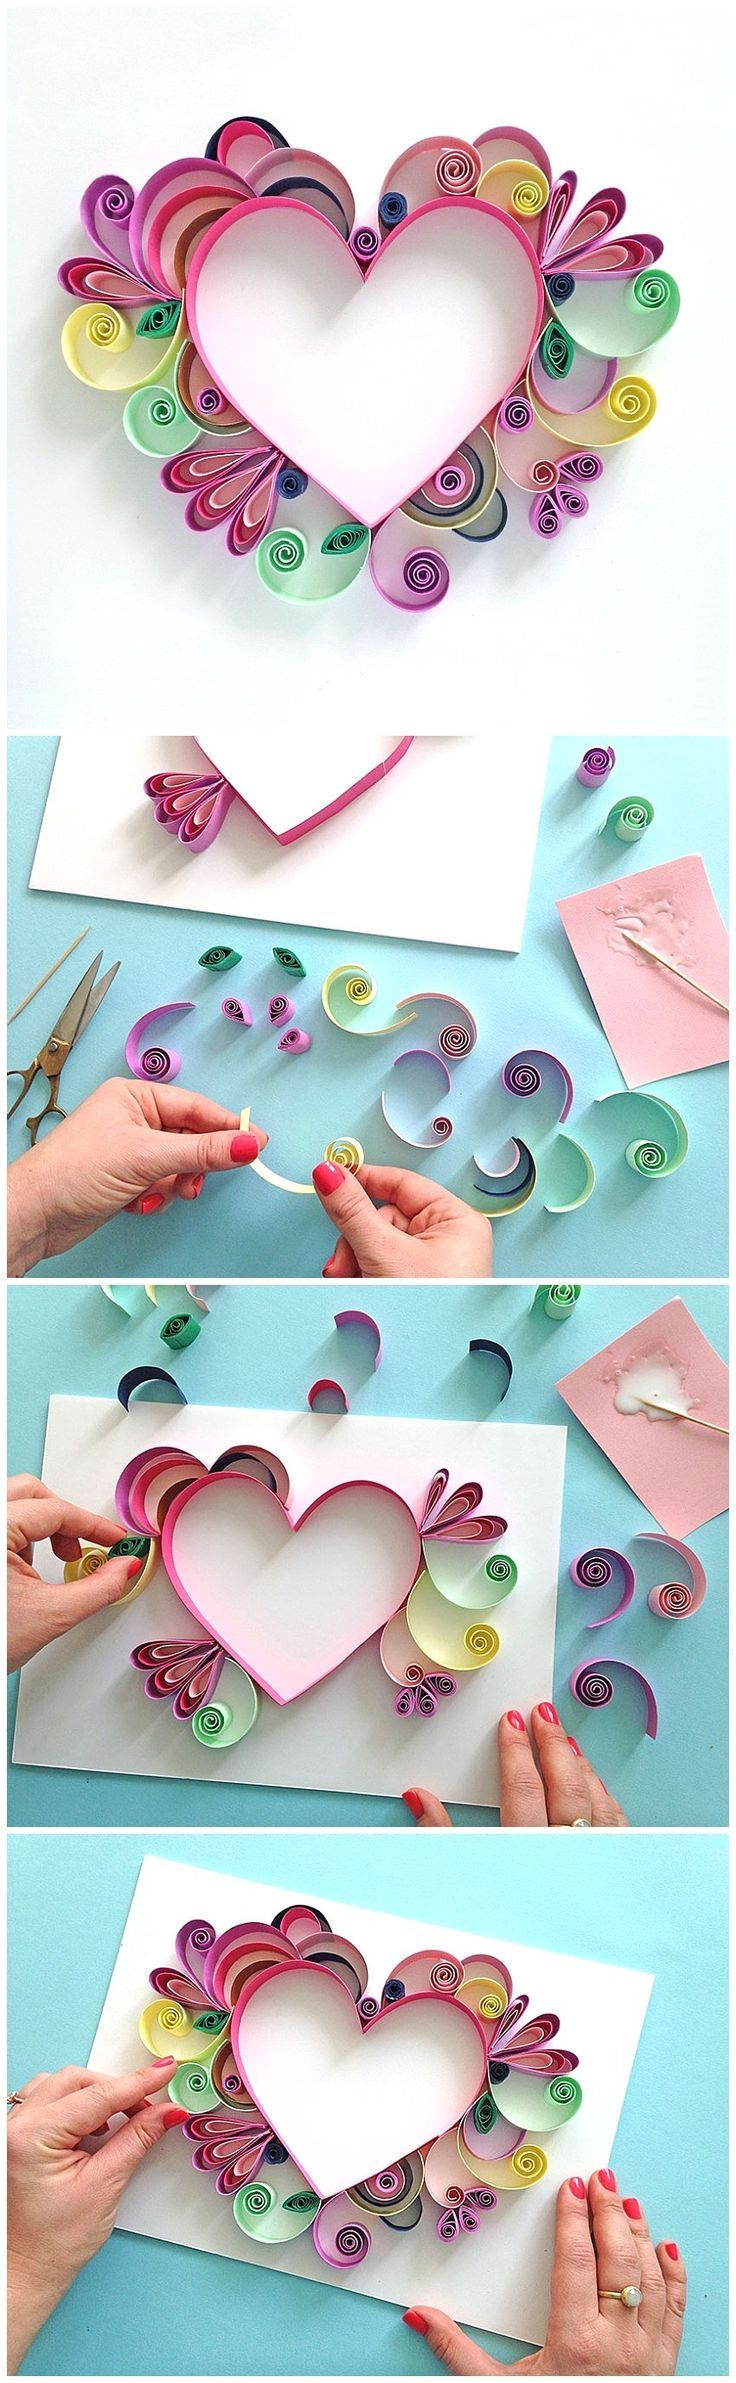 How to's : Learn How to Quill a darling Heart Shaped Mother's Day Paper Craft Gift Idea via Paper Chase - Moms and Grandmas will love these pretty handmade works of art!  The BEST Easy DIY Mother's Day Gifts and Treats Ideas - Holiday Craft Activity Projects, Free Printables and Favorite Brunch Desserts Recipes for Moms and Grandmas